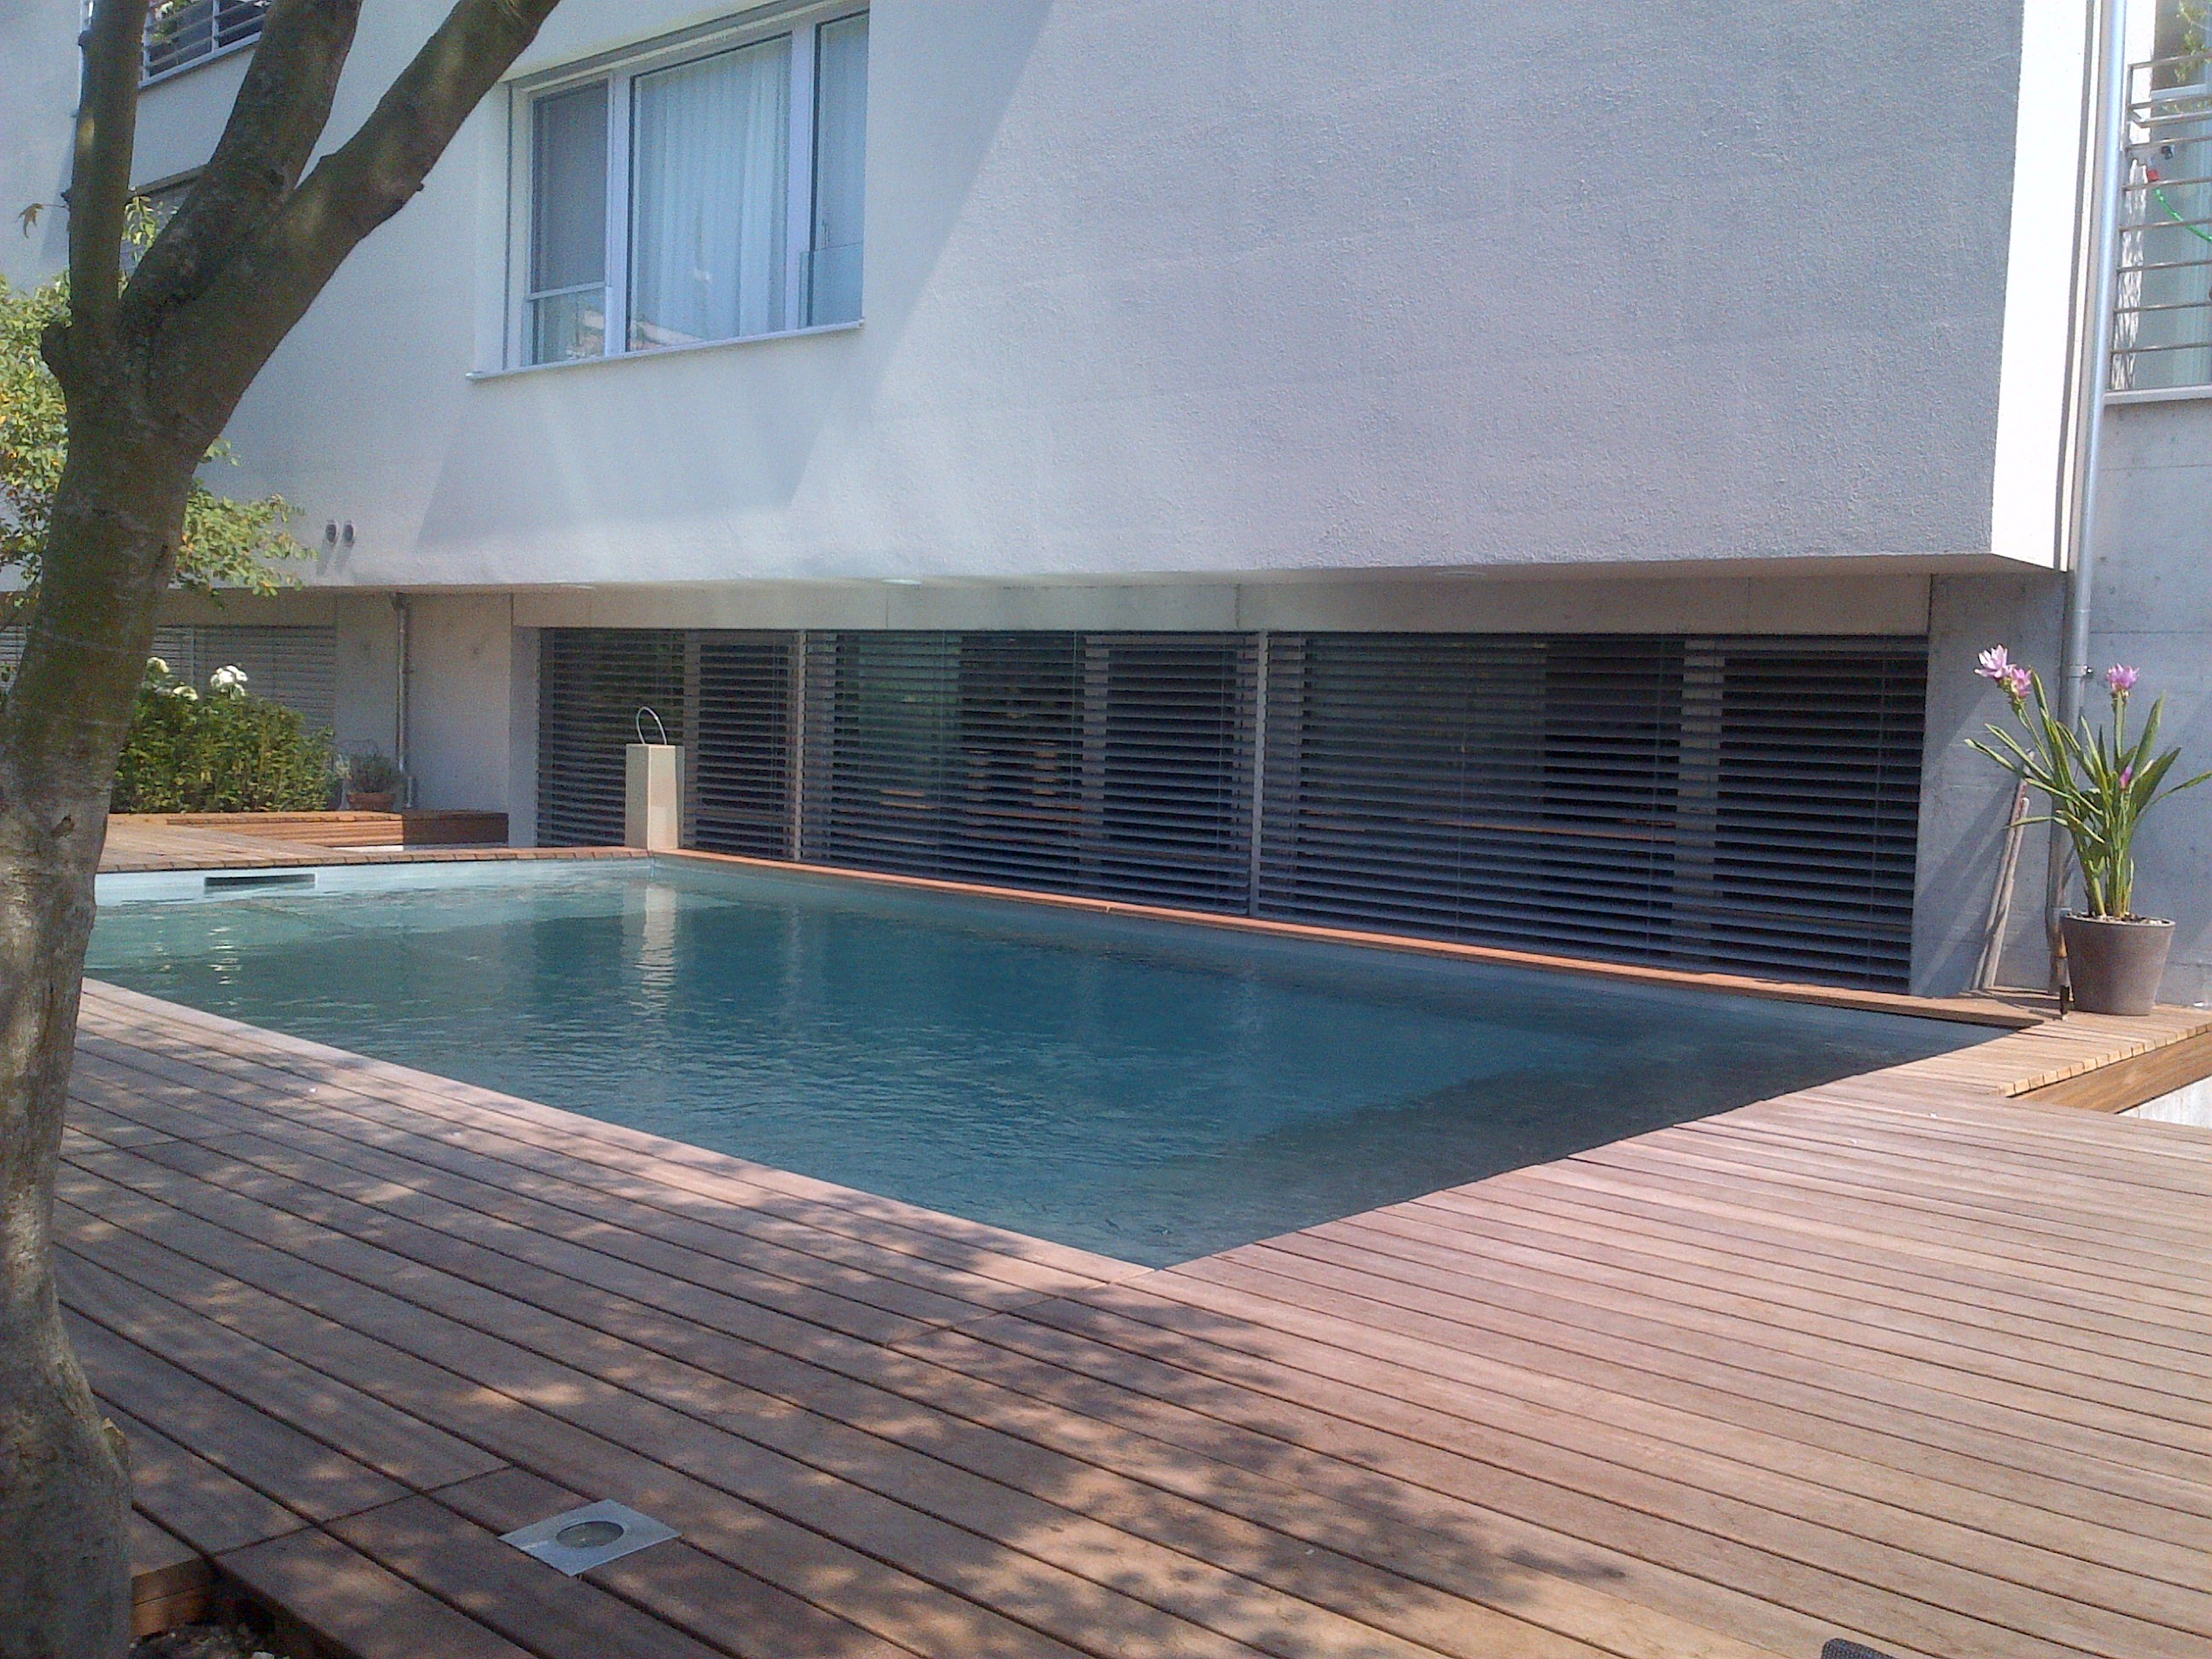 Chrom line edelstahl pool chromstahl pool swimmingpool - Stahl swimmingpool ...